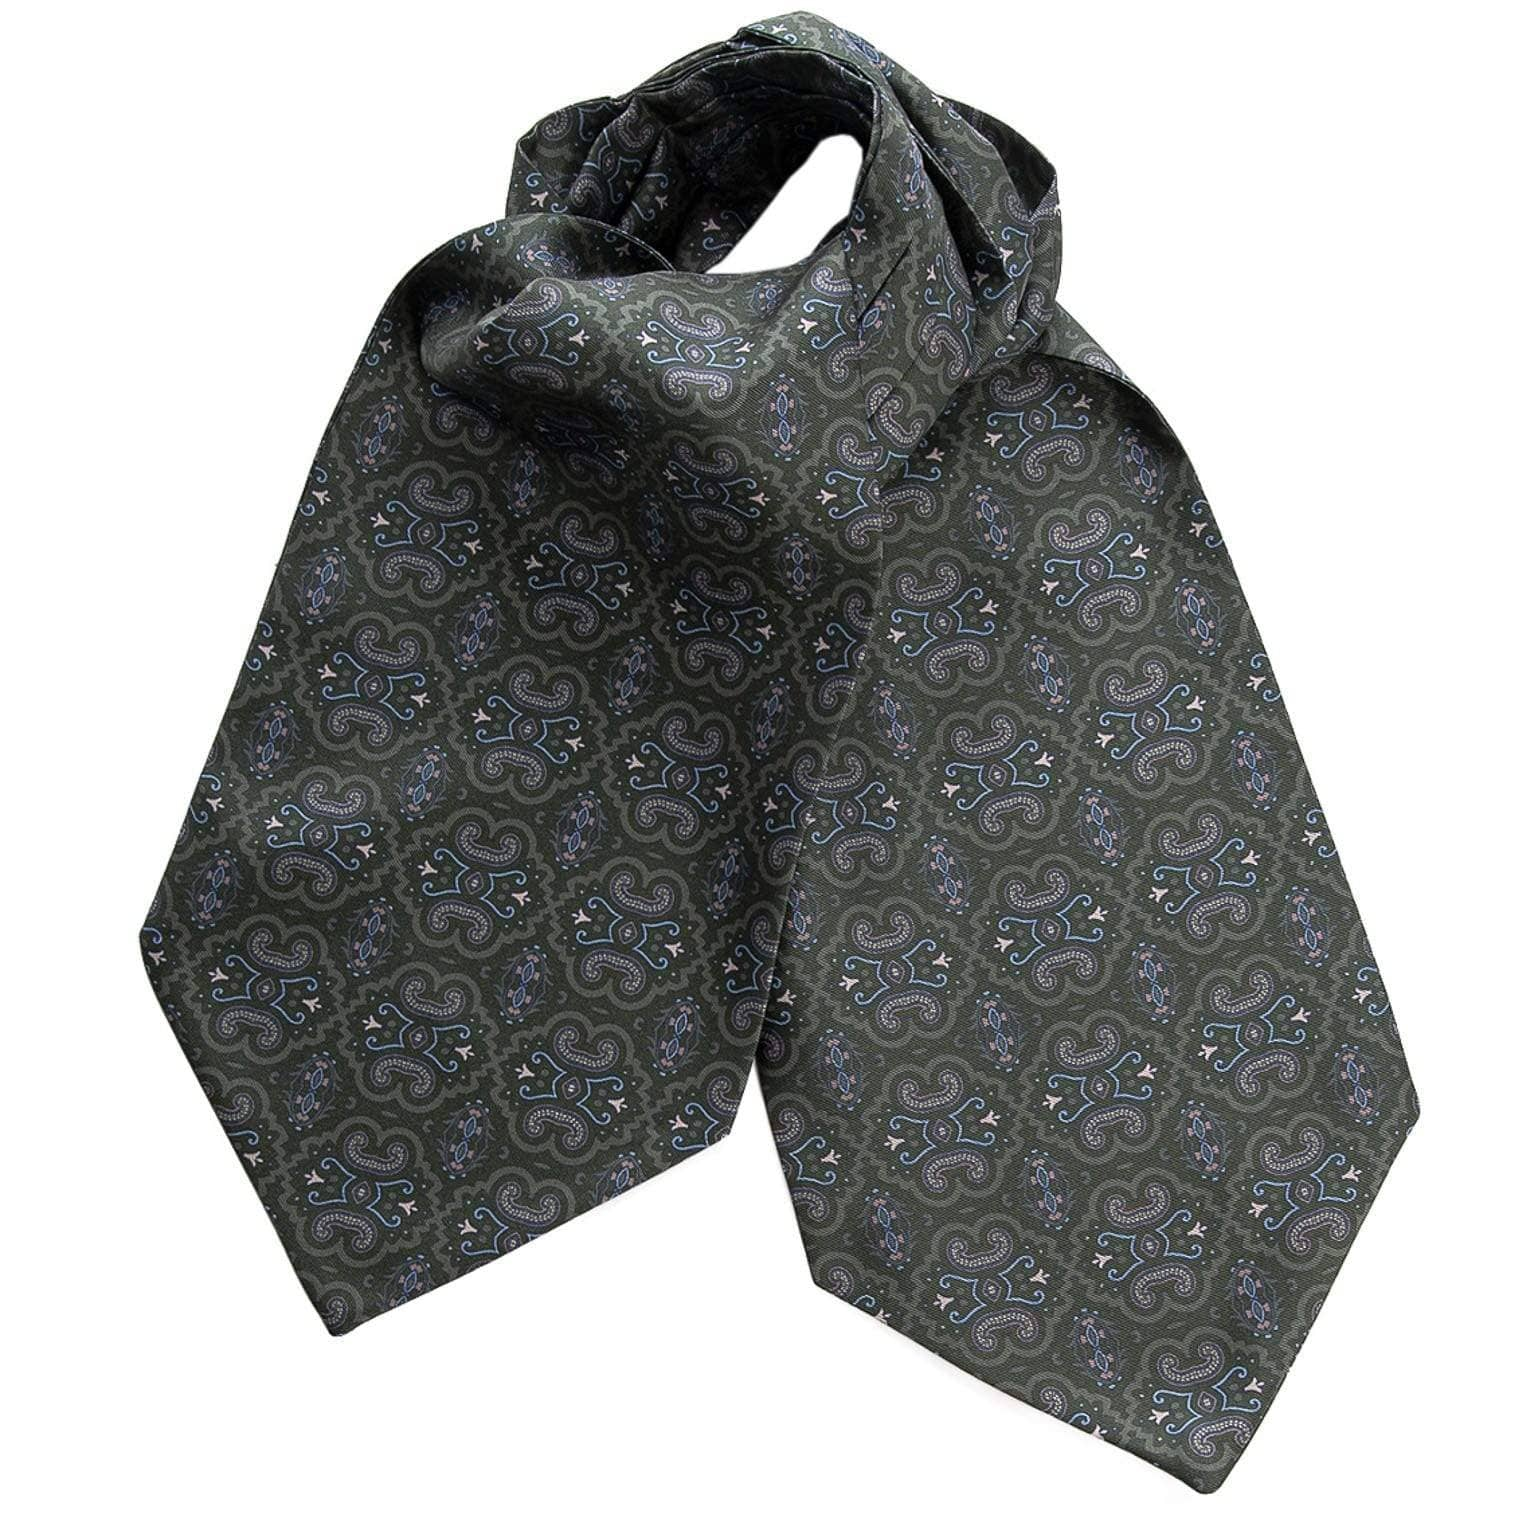 Silk Ascot Cravat Tie - Green - 100% Made in Italy